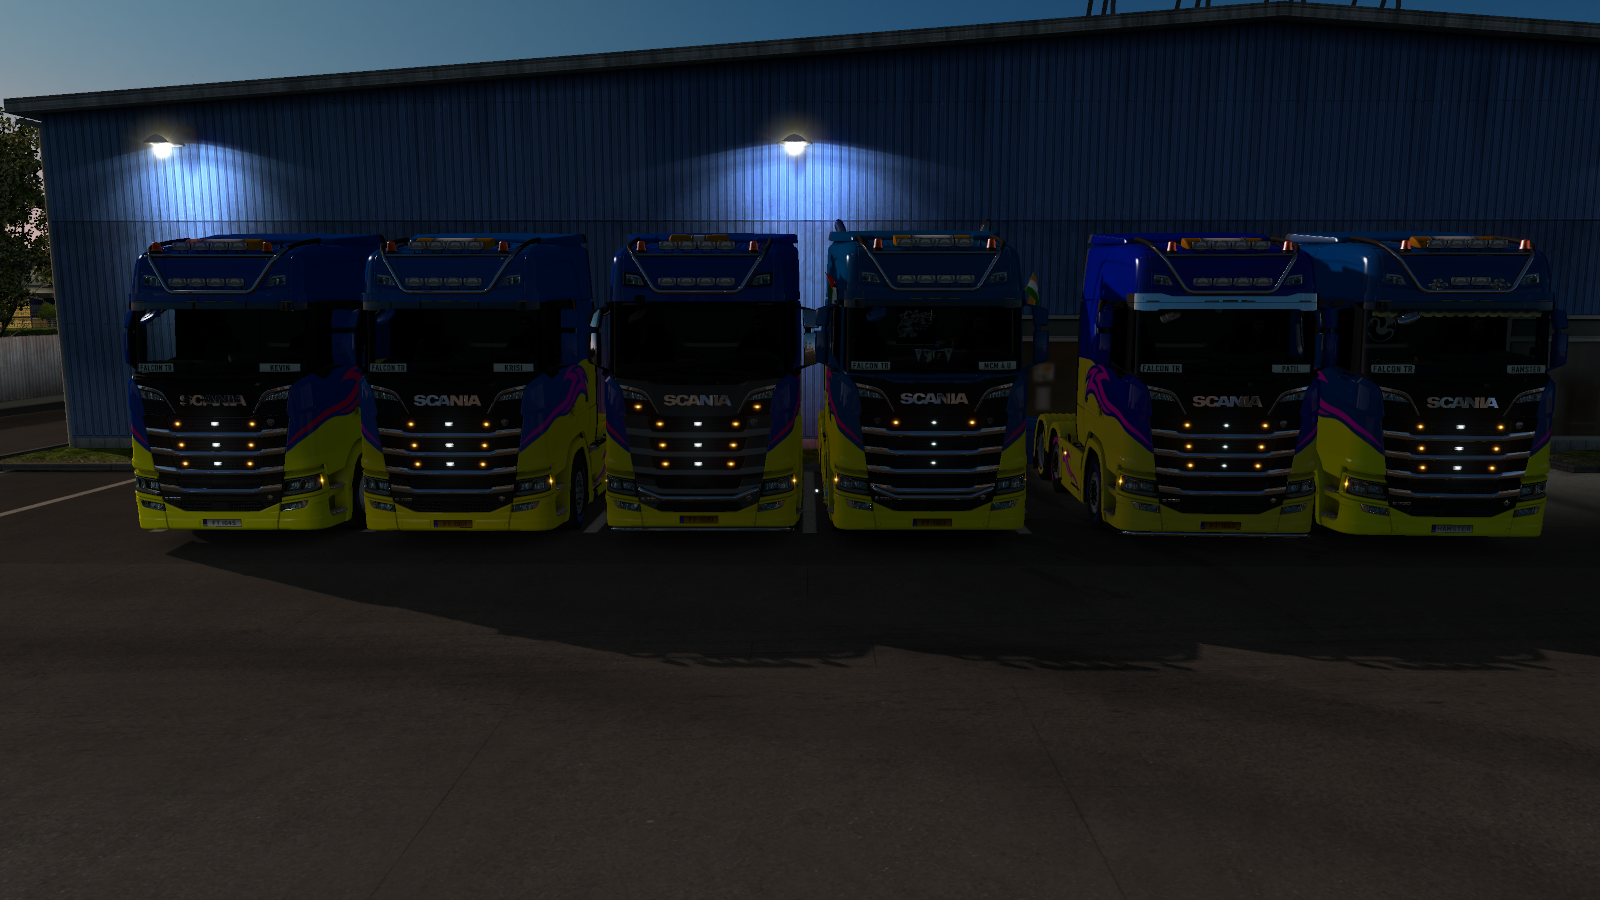 ets2_20190629_184307_00.png